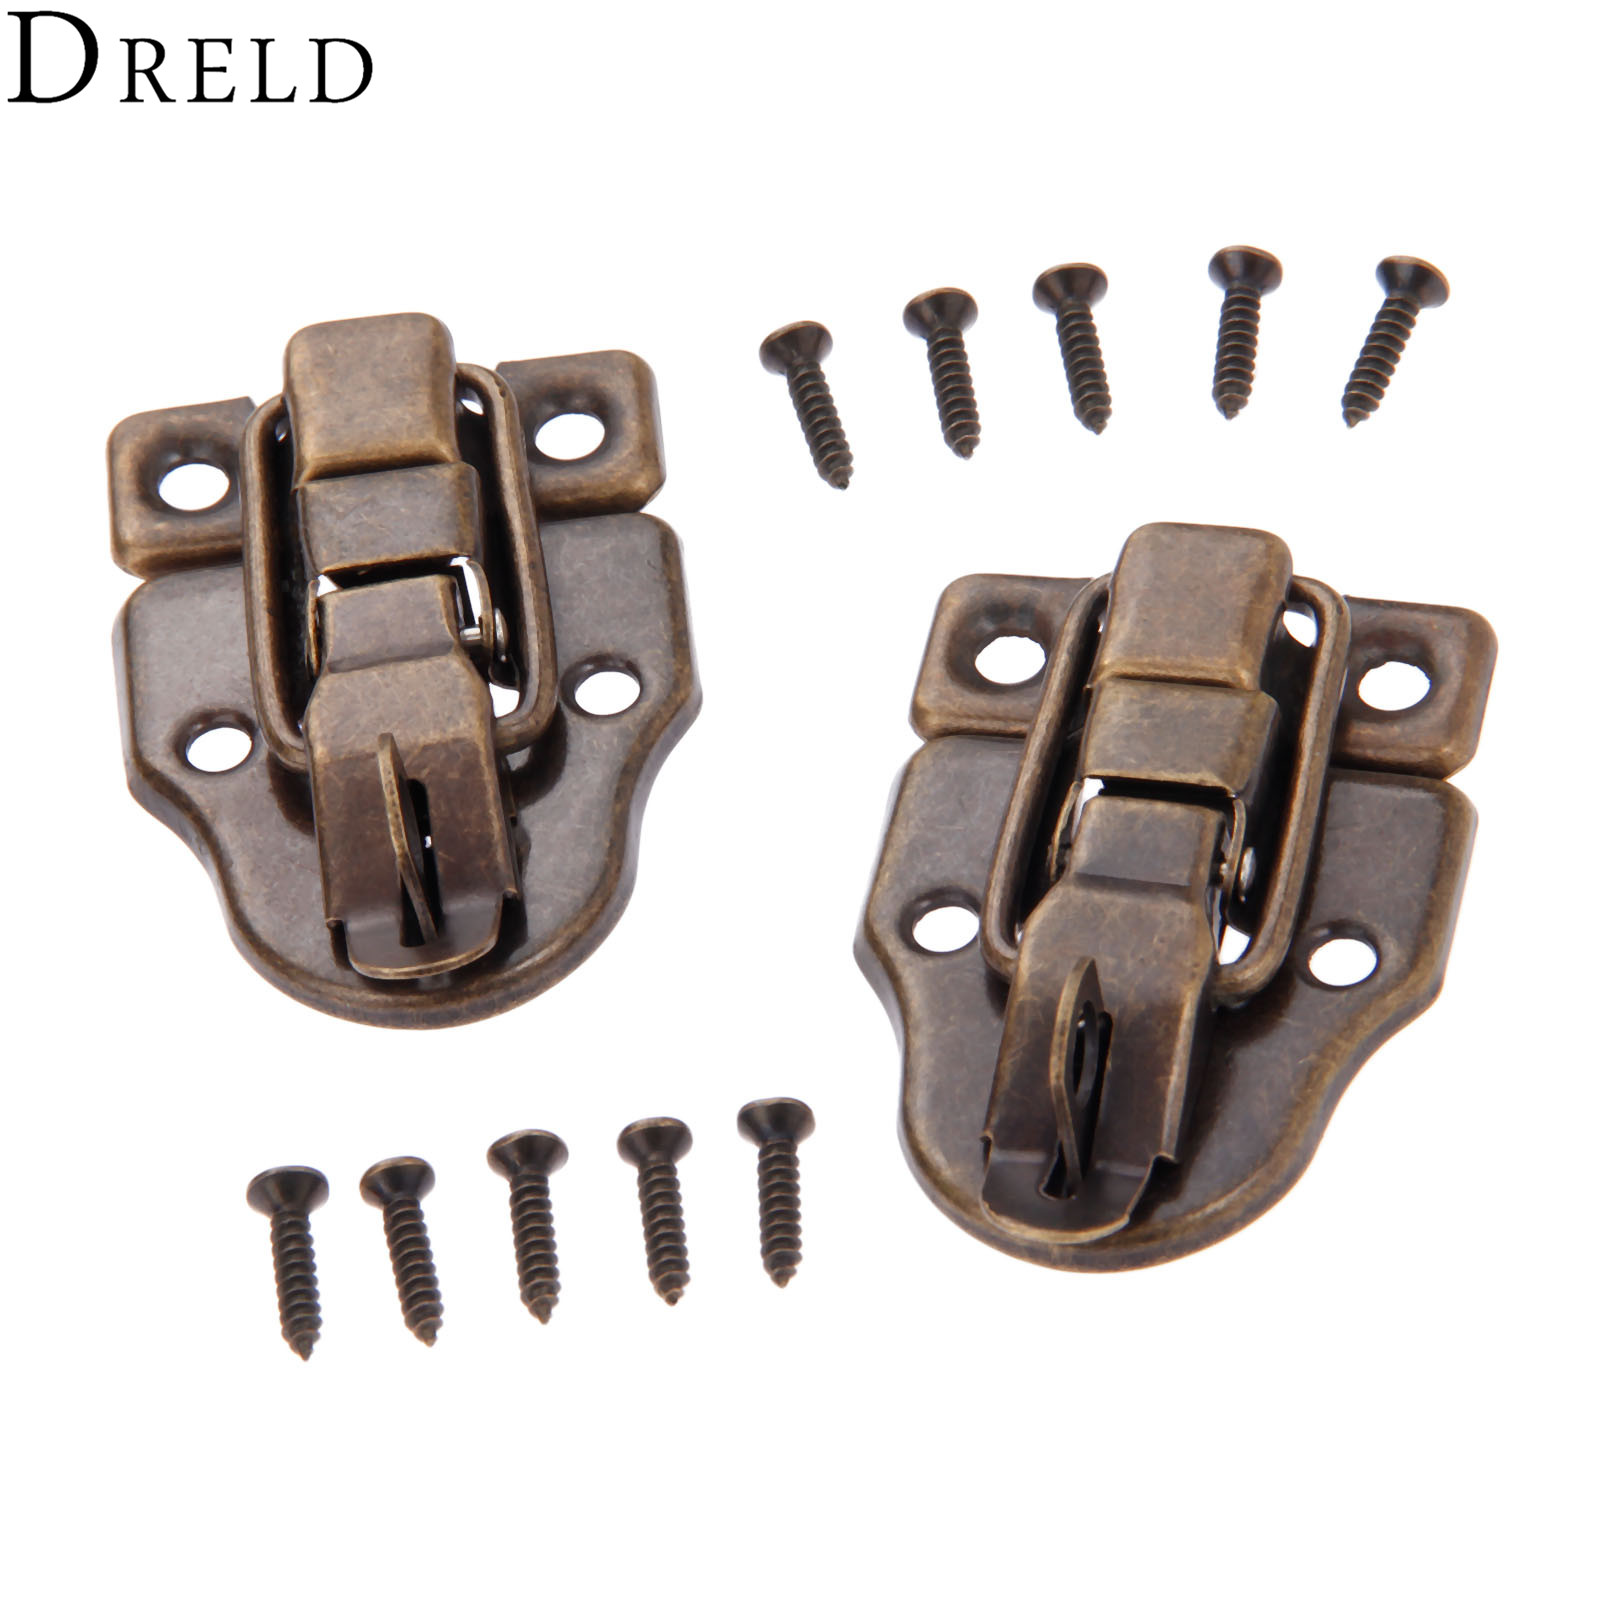 DRELD 2Pcs Antique Jewelry Wooden Box Latch Hasps Decorative Drawer Suitcases Hasp Latch Buckle Clasp Furniture Hardware 59x40mm